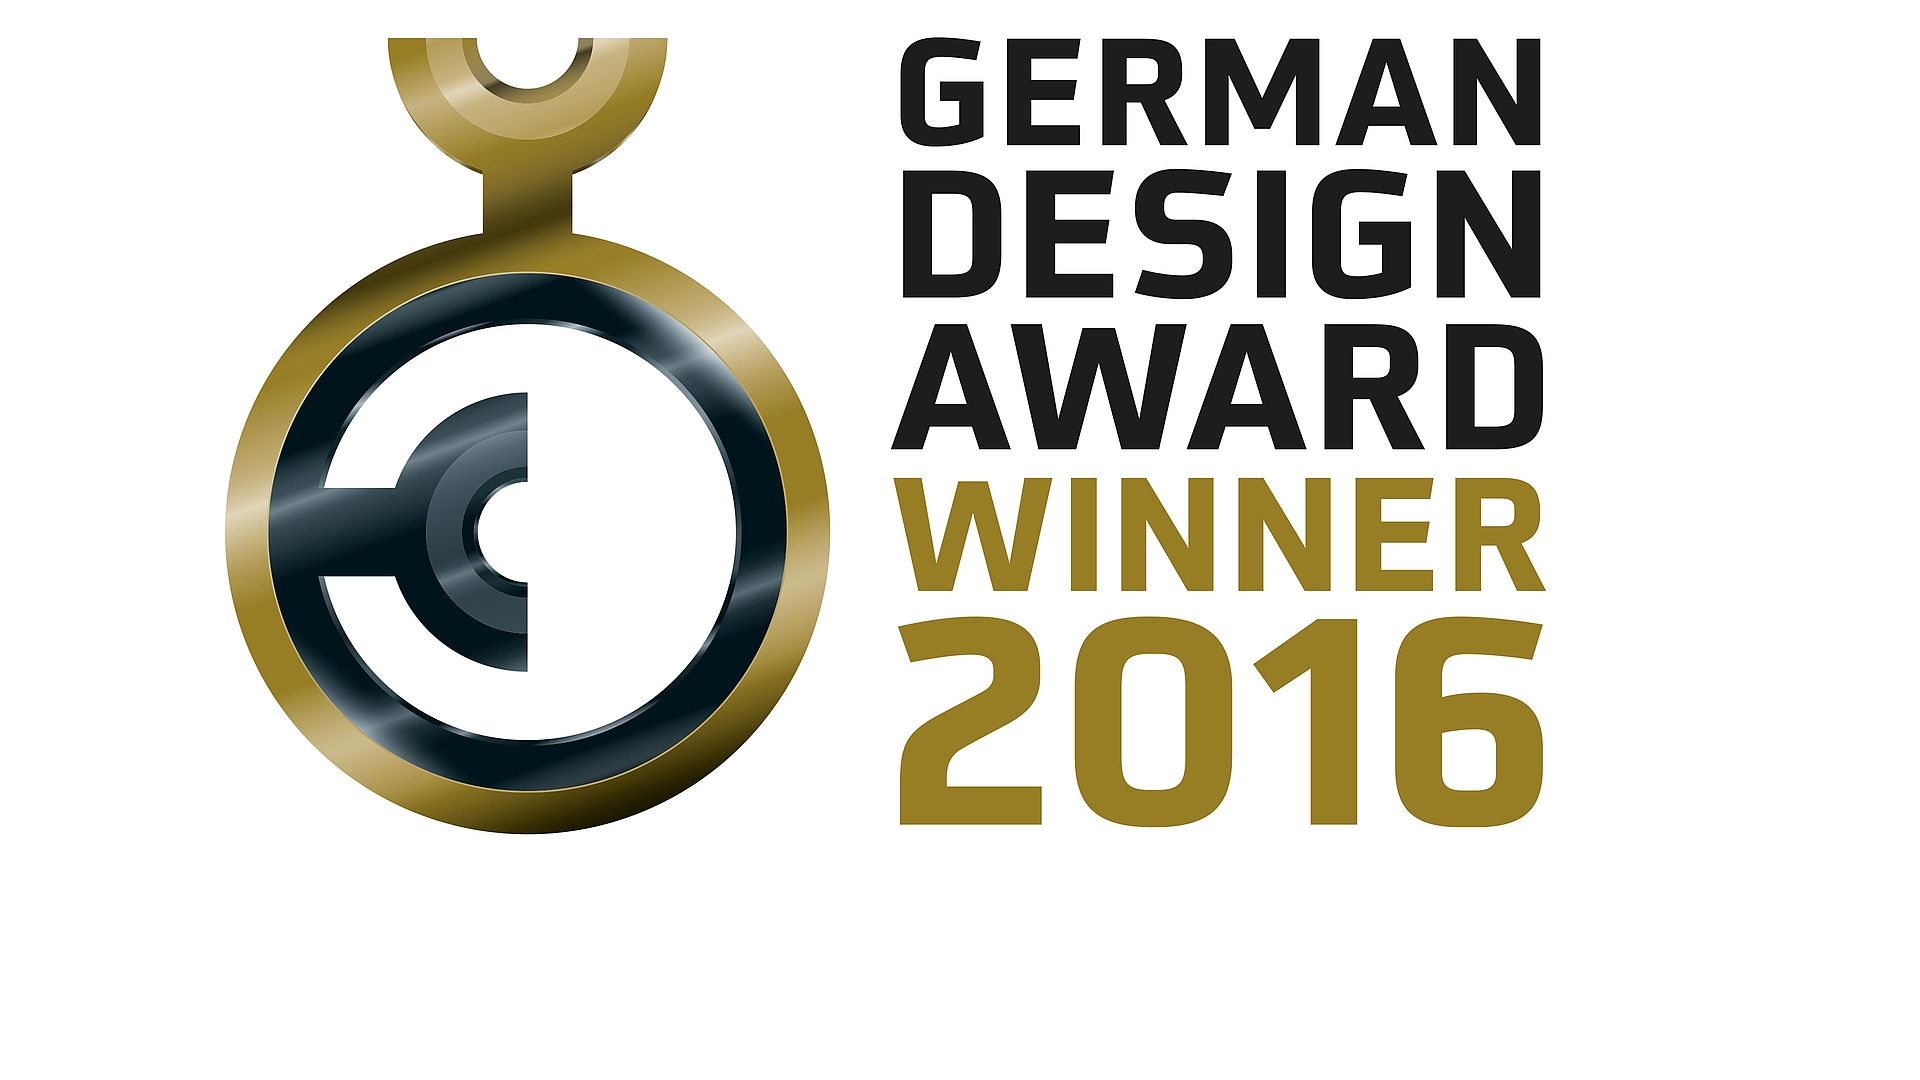 bora-com_awards_3840x2160px_0022_German-Design-Award_2016.jpg